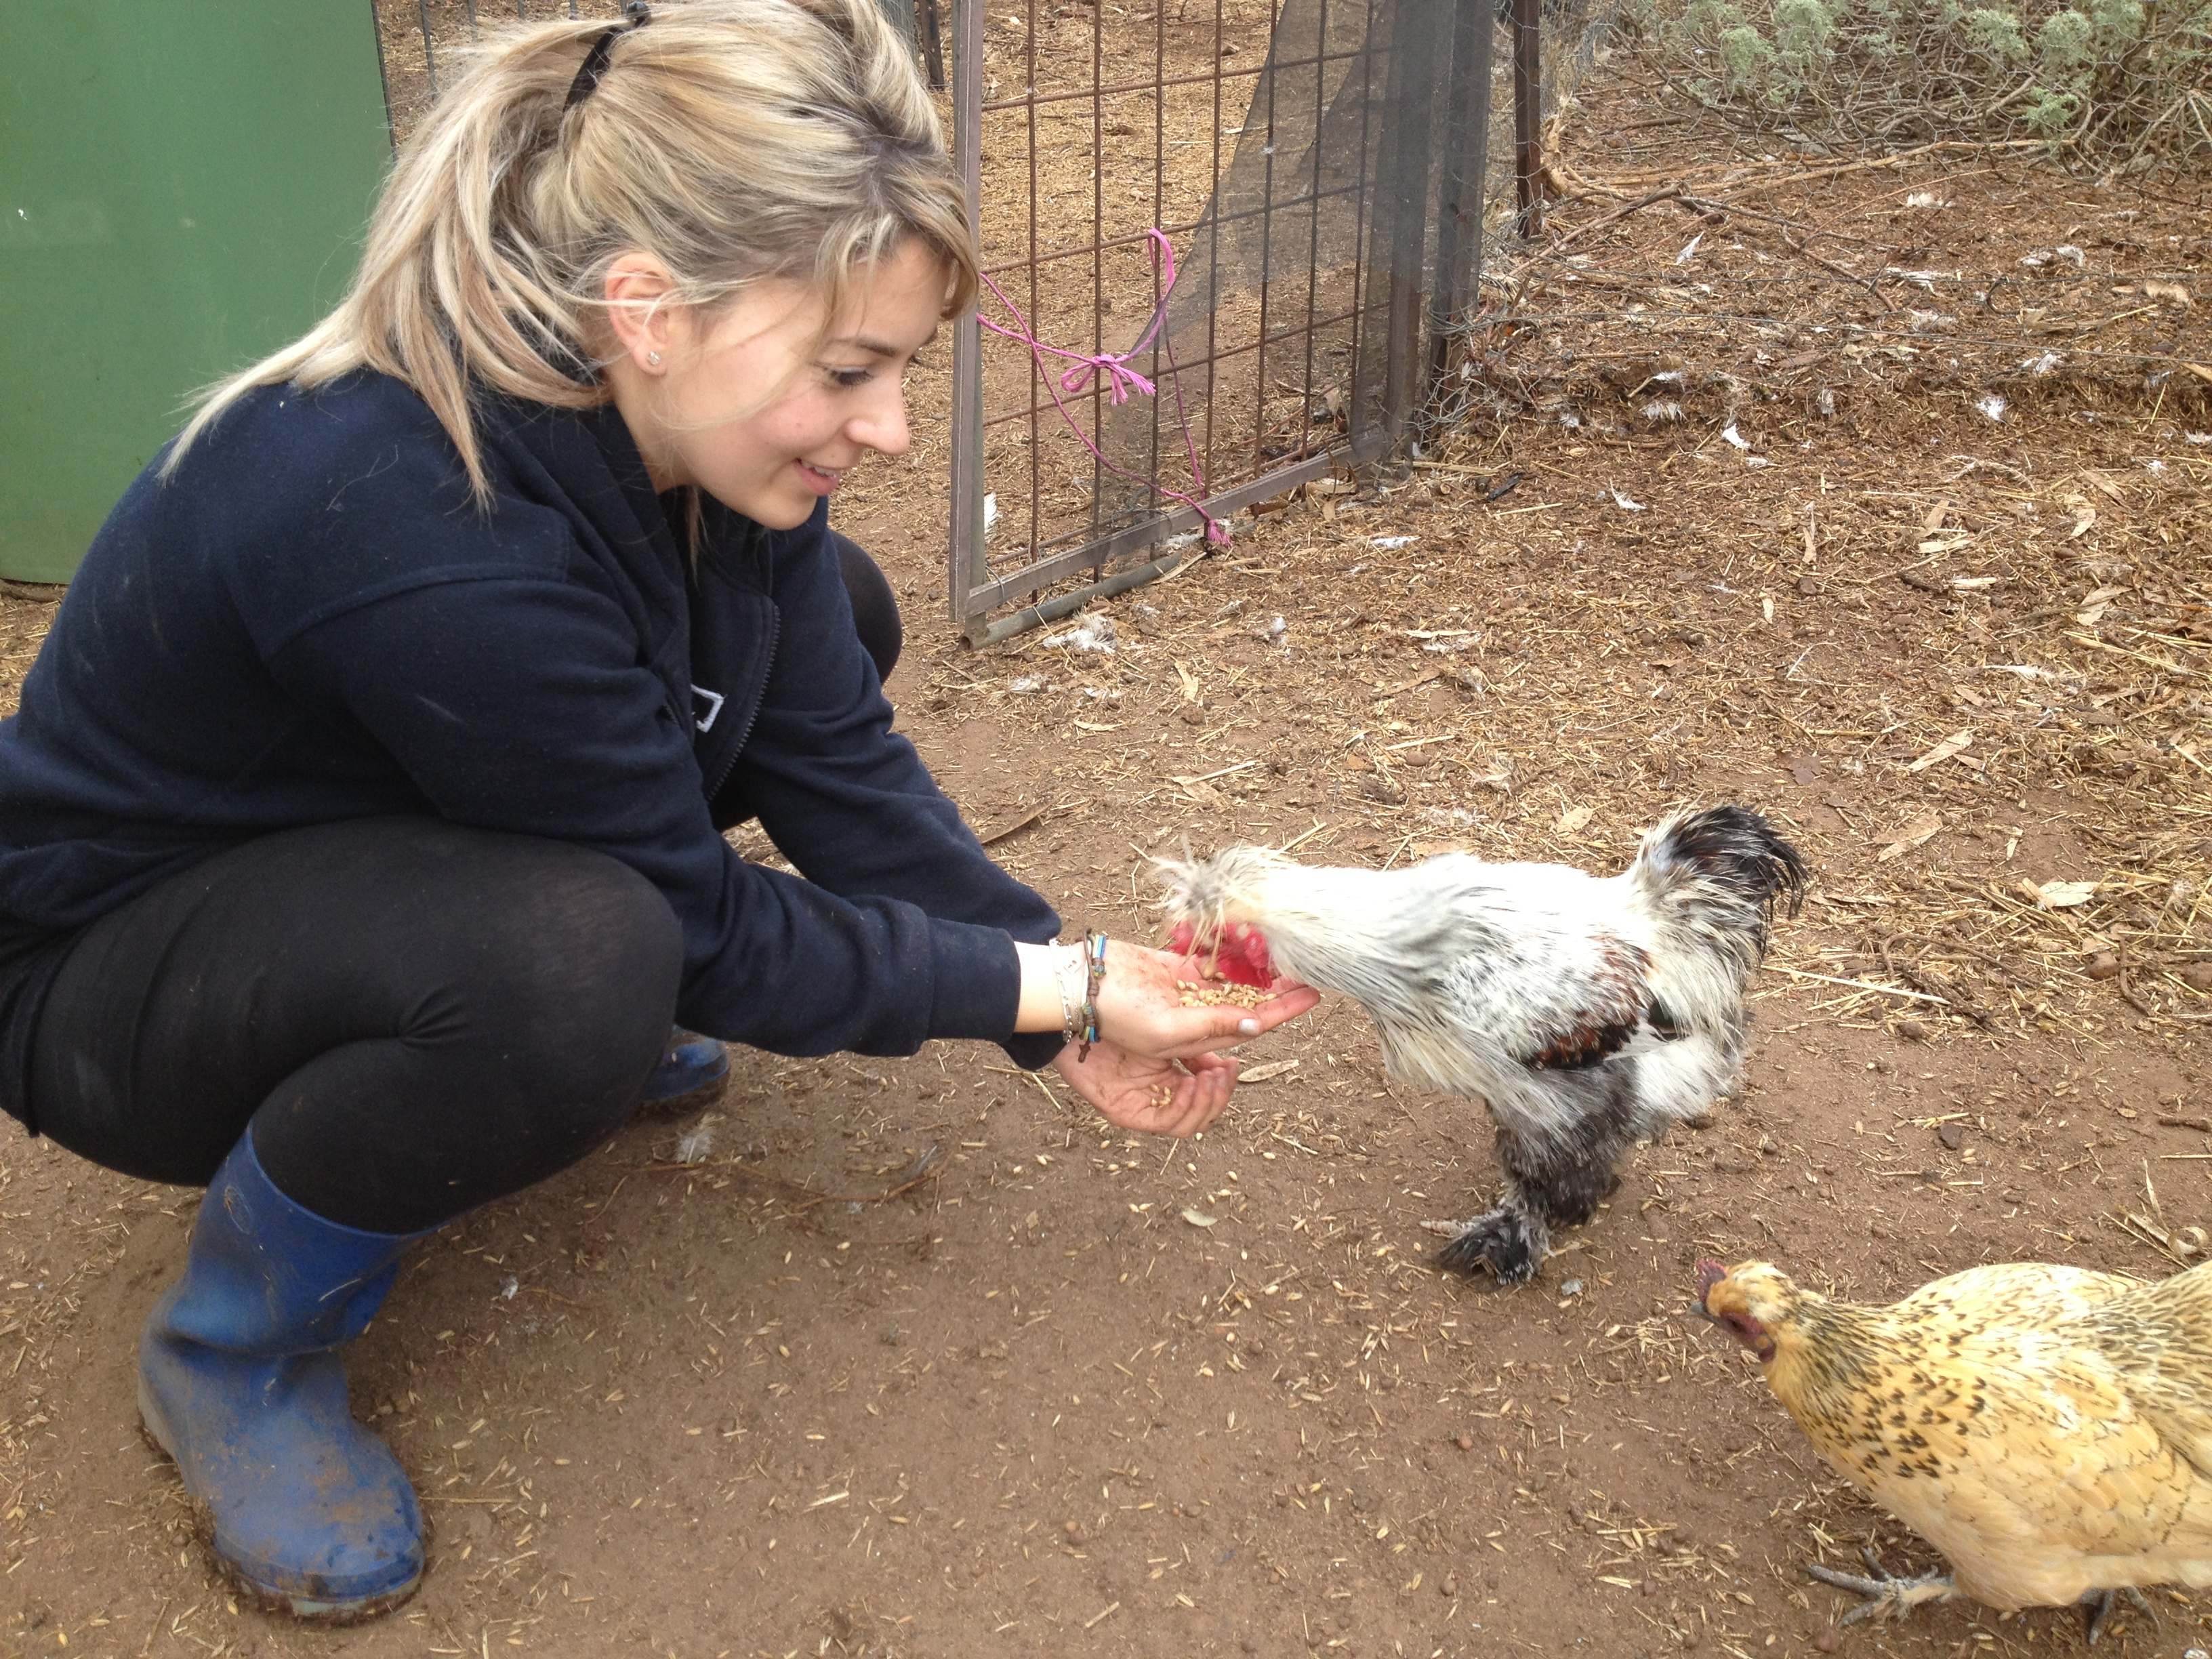 Making friends with chickens